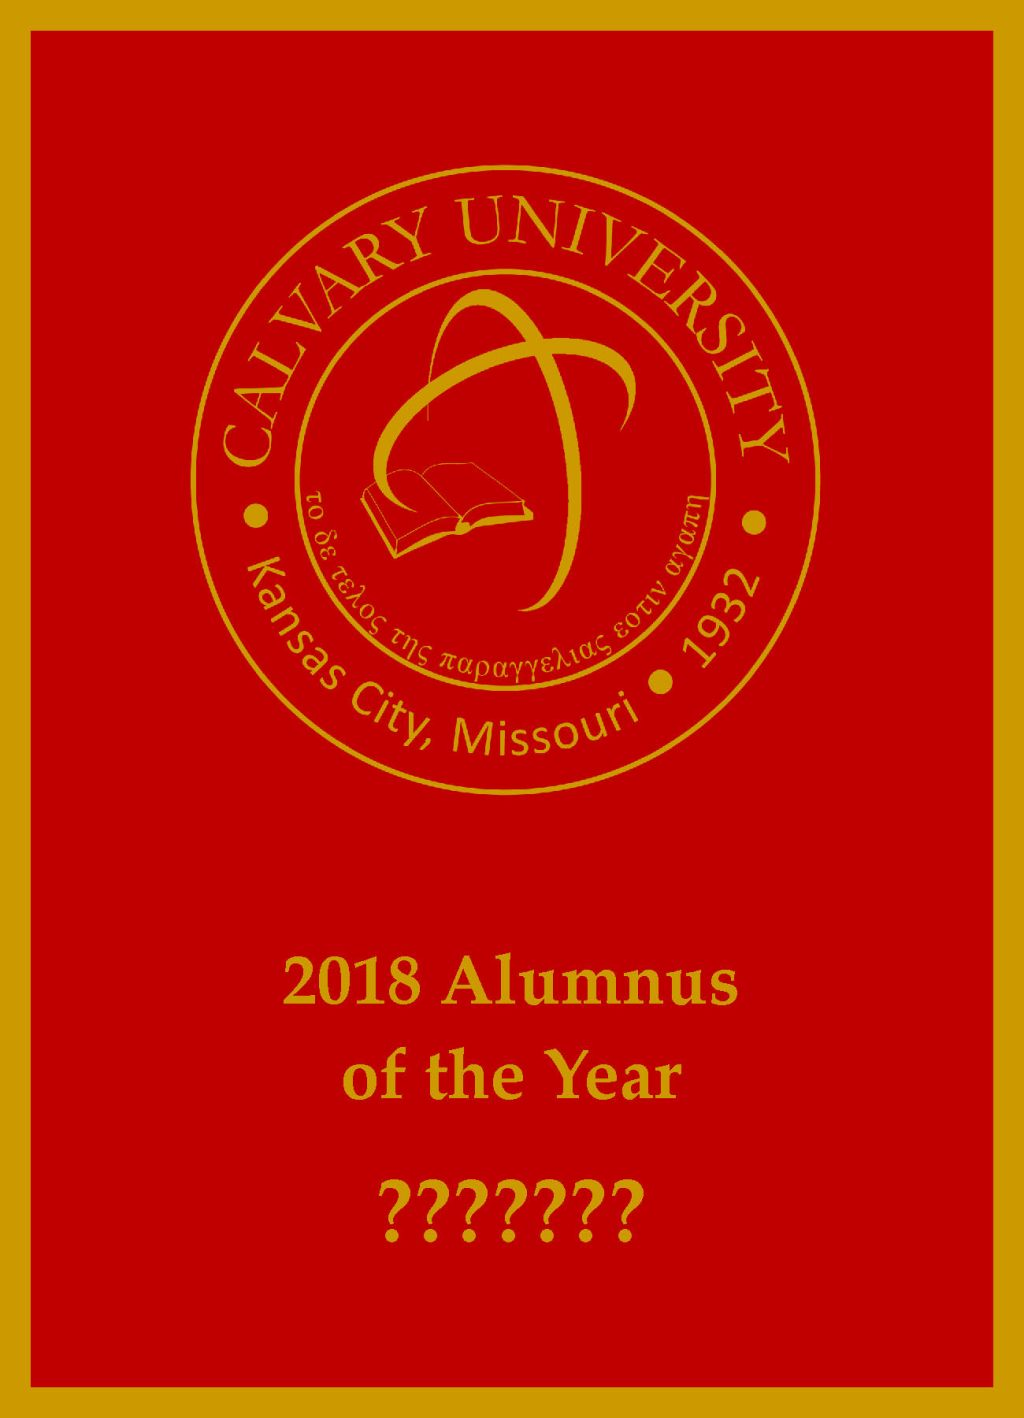 Seeking Nominations for 2018 Alumnus of the Year